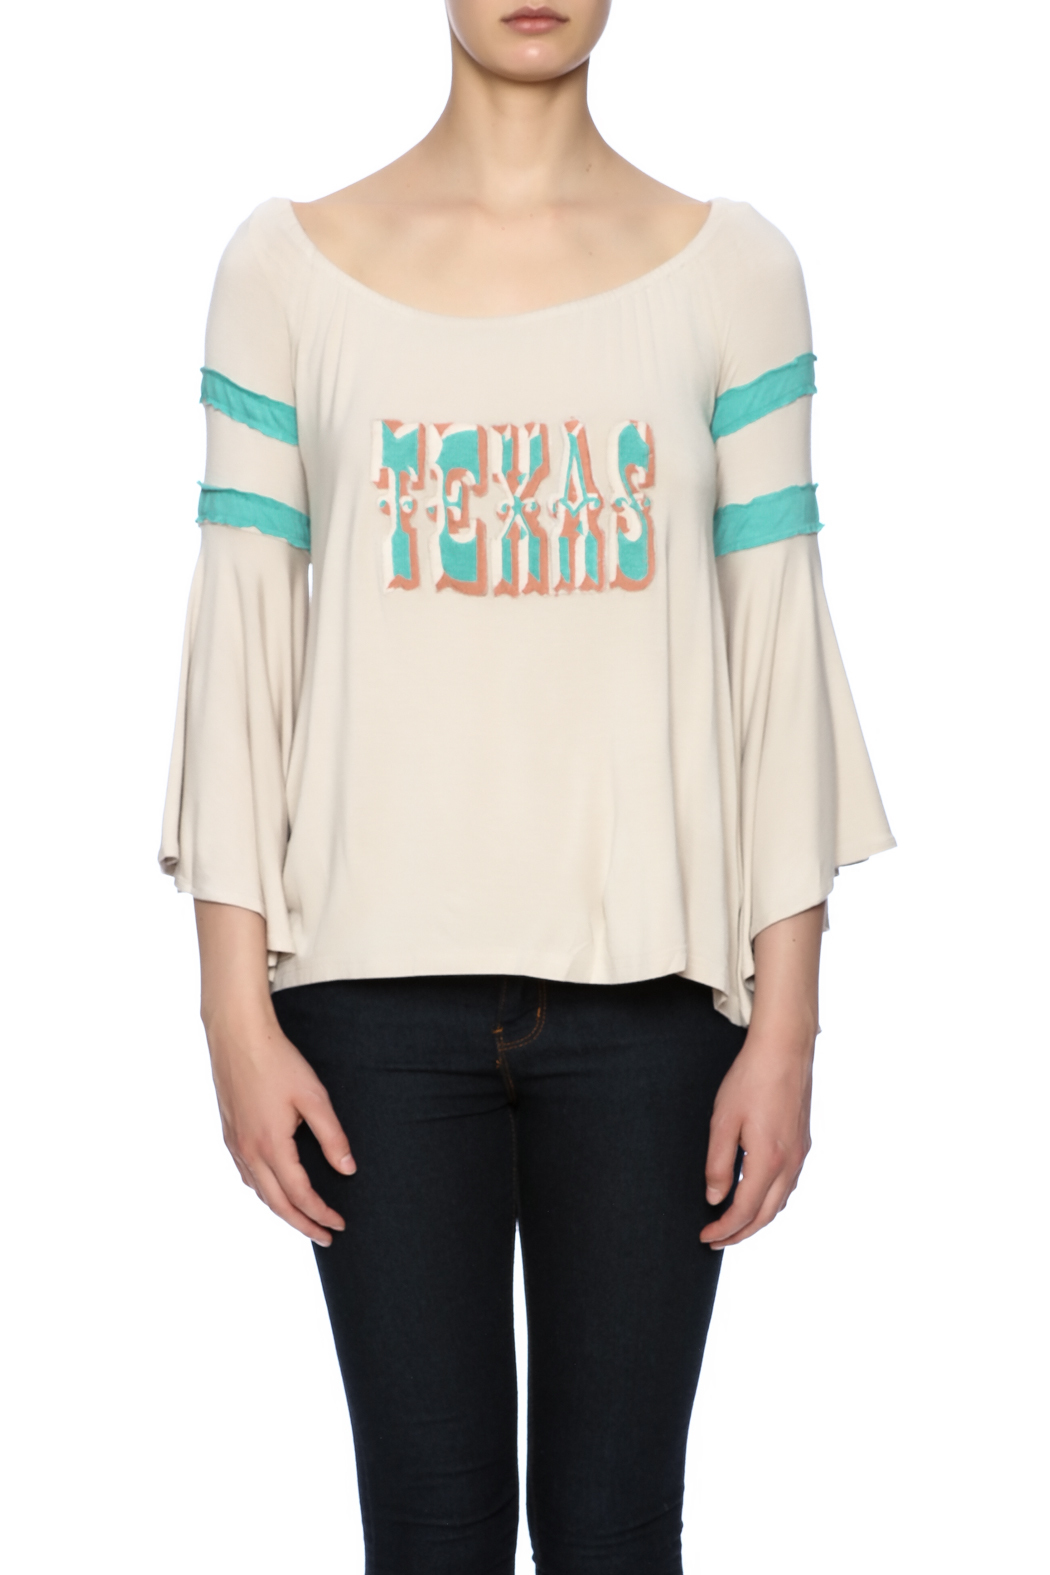 Judith March Texas Embroidered Top - Main Image